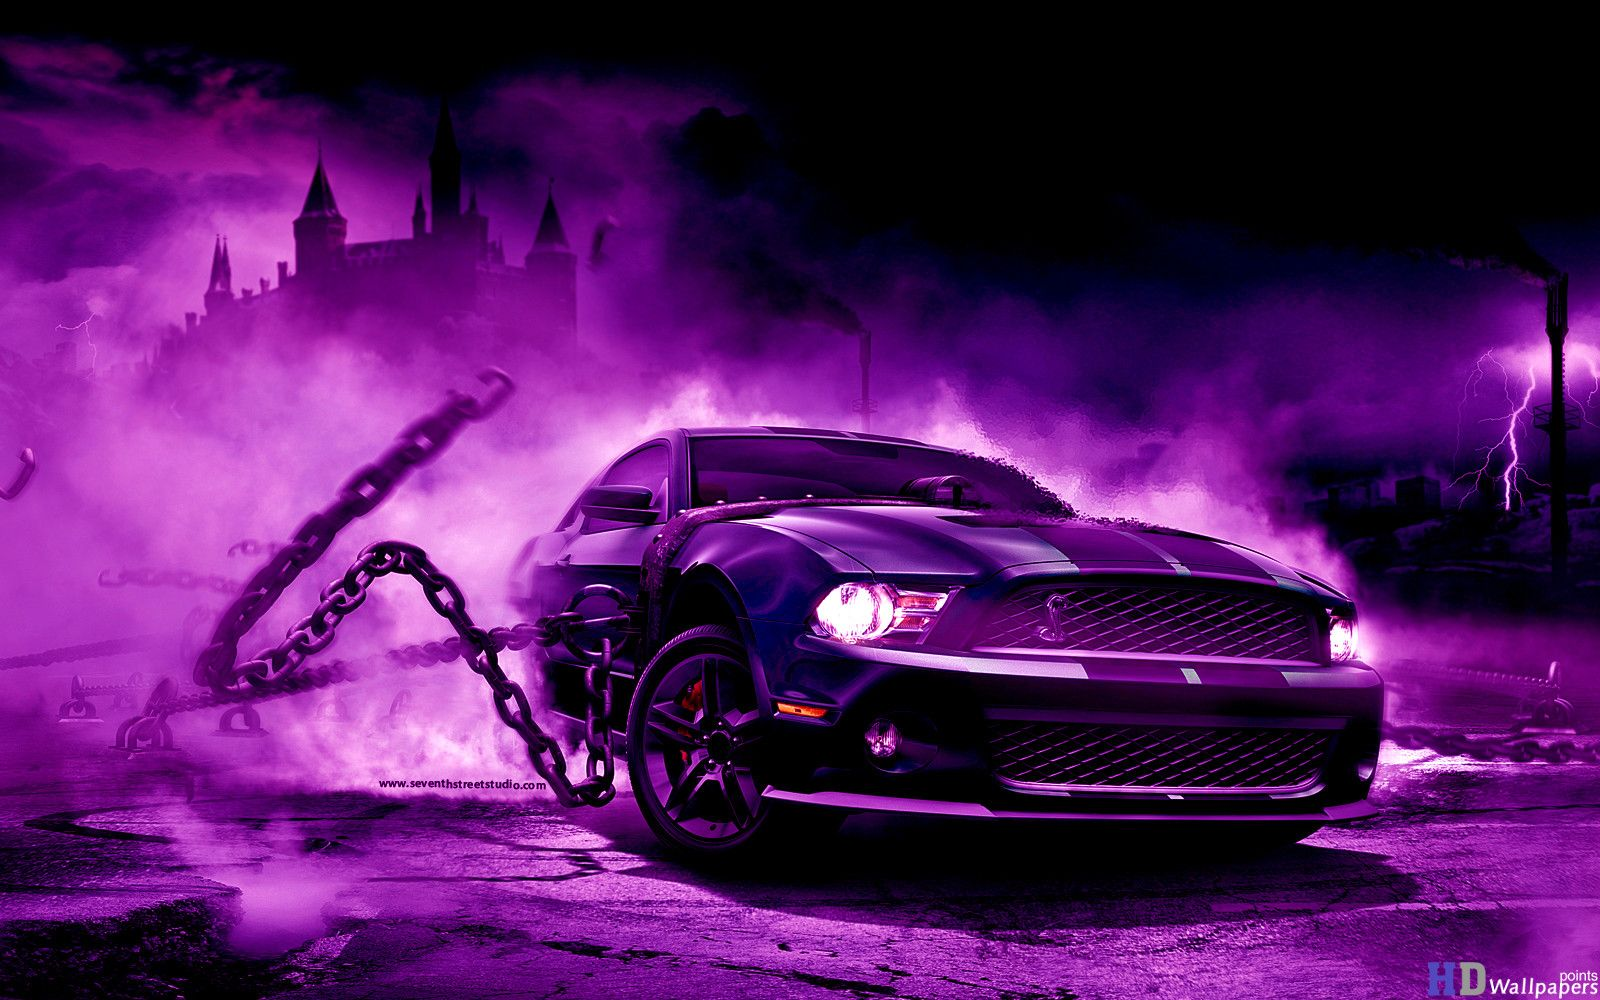 Cool Car 3d Wallpapers HD Background Desktop #14500